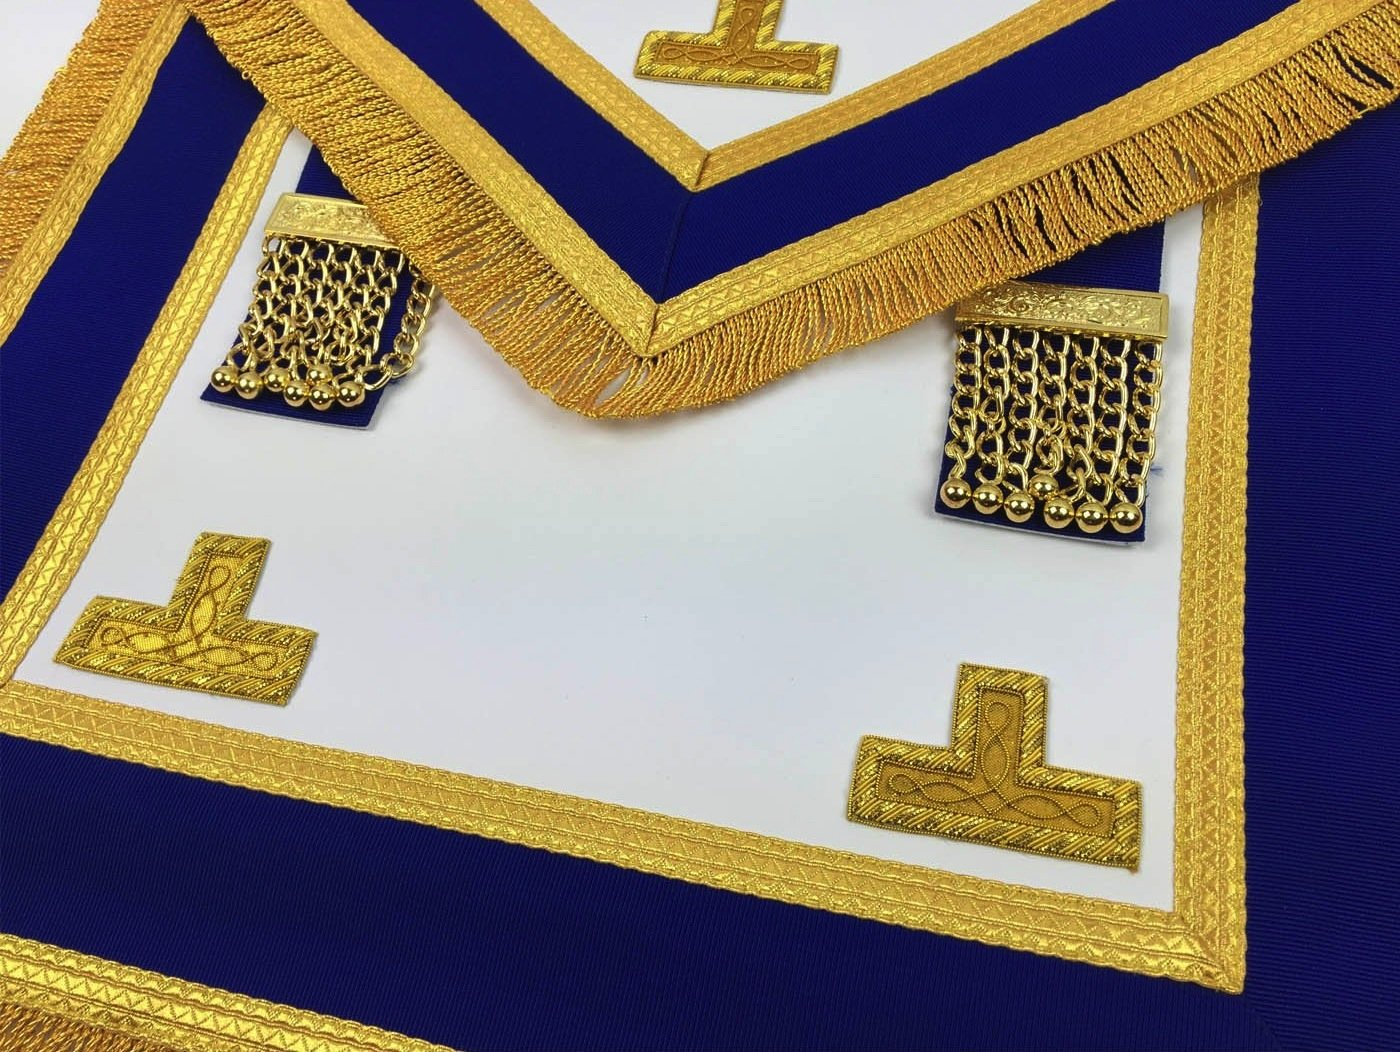 Masonic Craft Provincial Full Dress Apron and Collar with free Glove - Bricks Masons